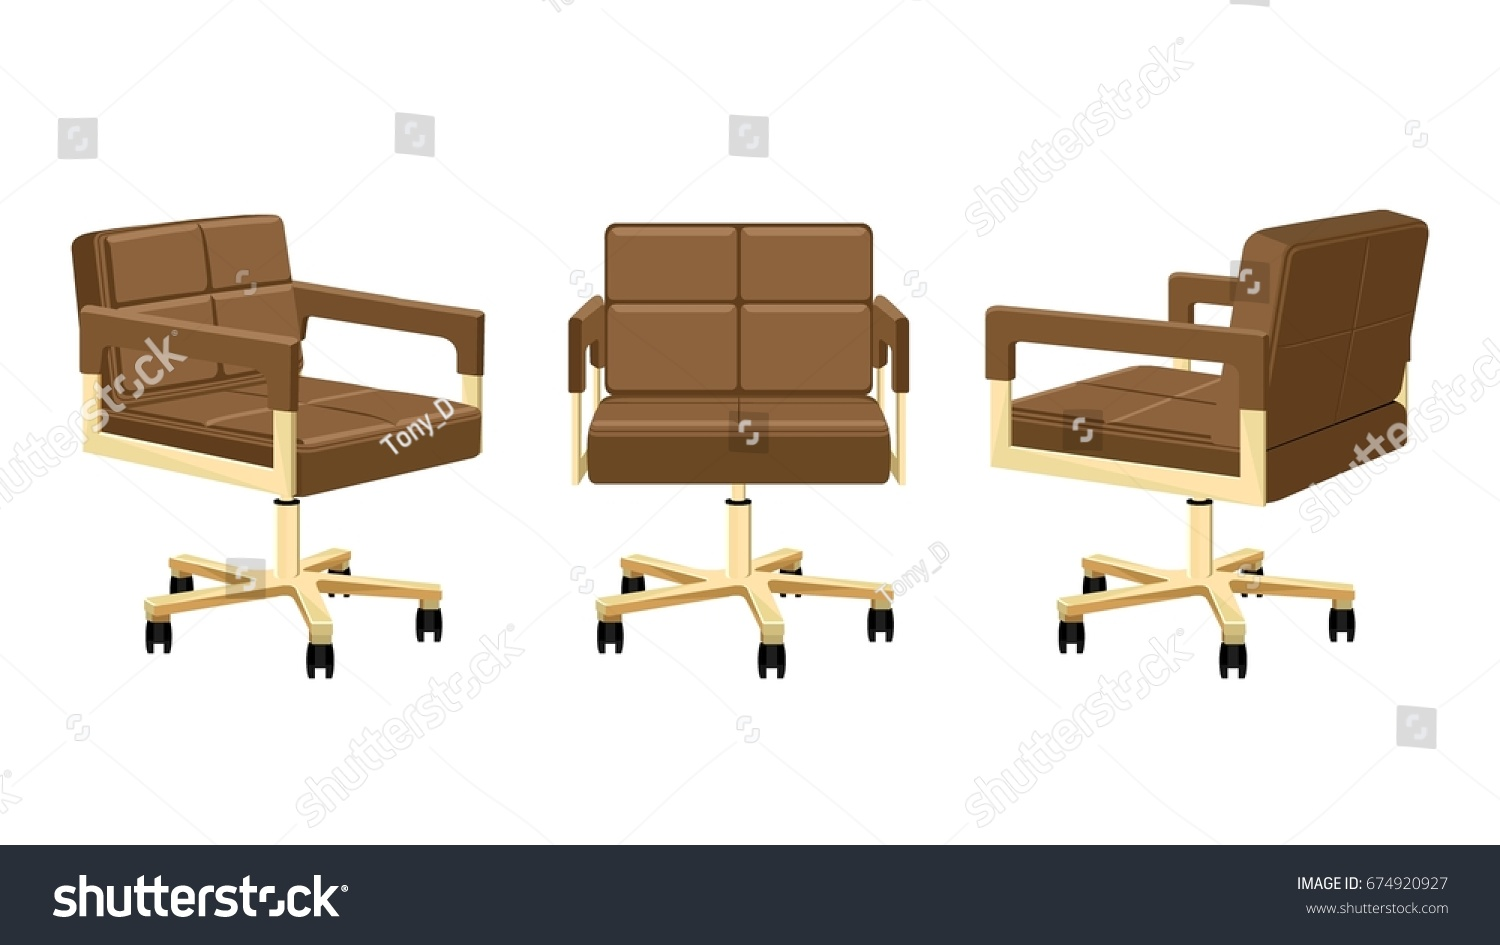 Office Chair Modern Armchair Lowback Brown Stock Vector Royalty Free 674920927